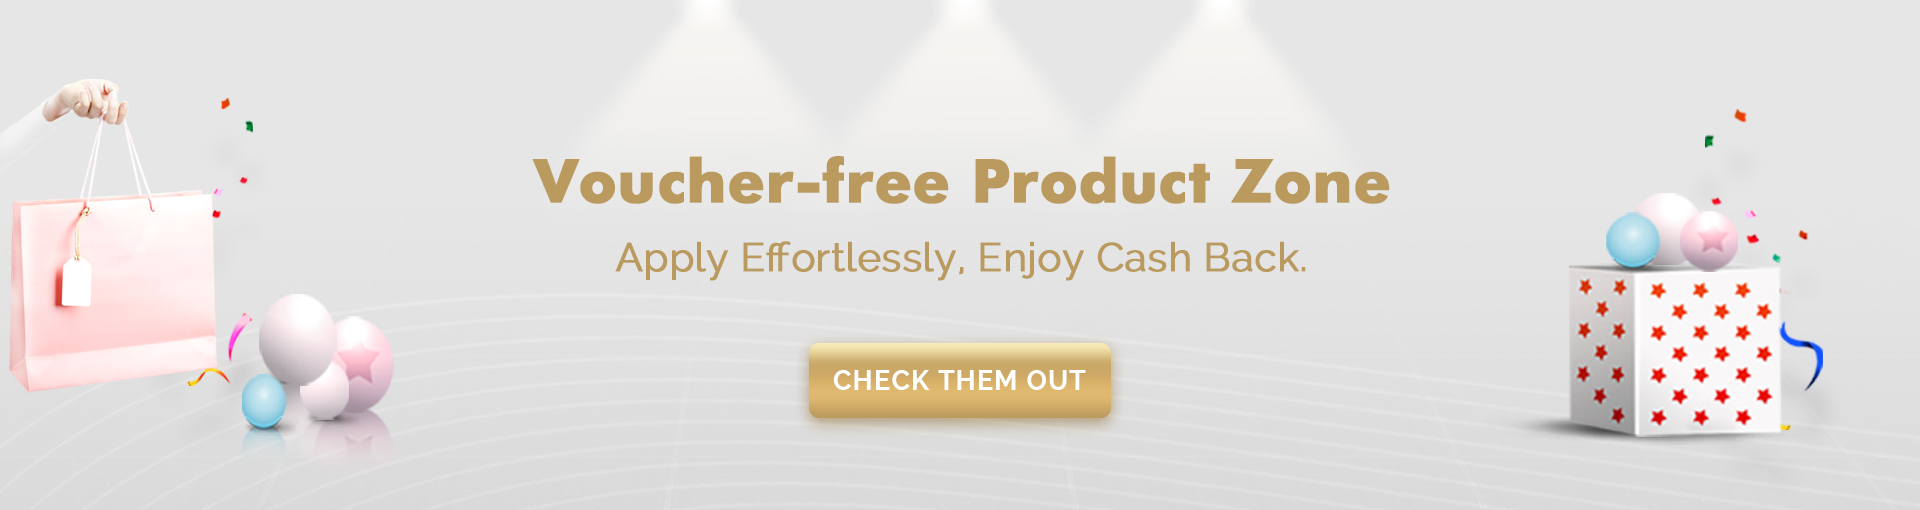 Voucher-free Product zone